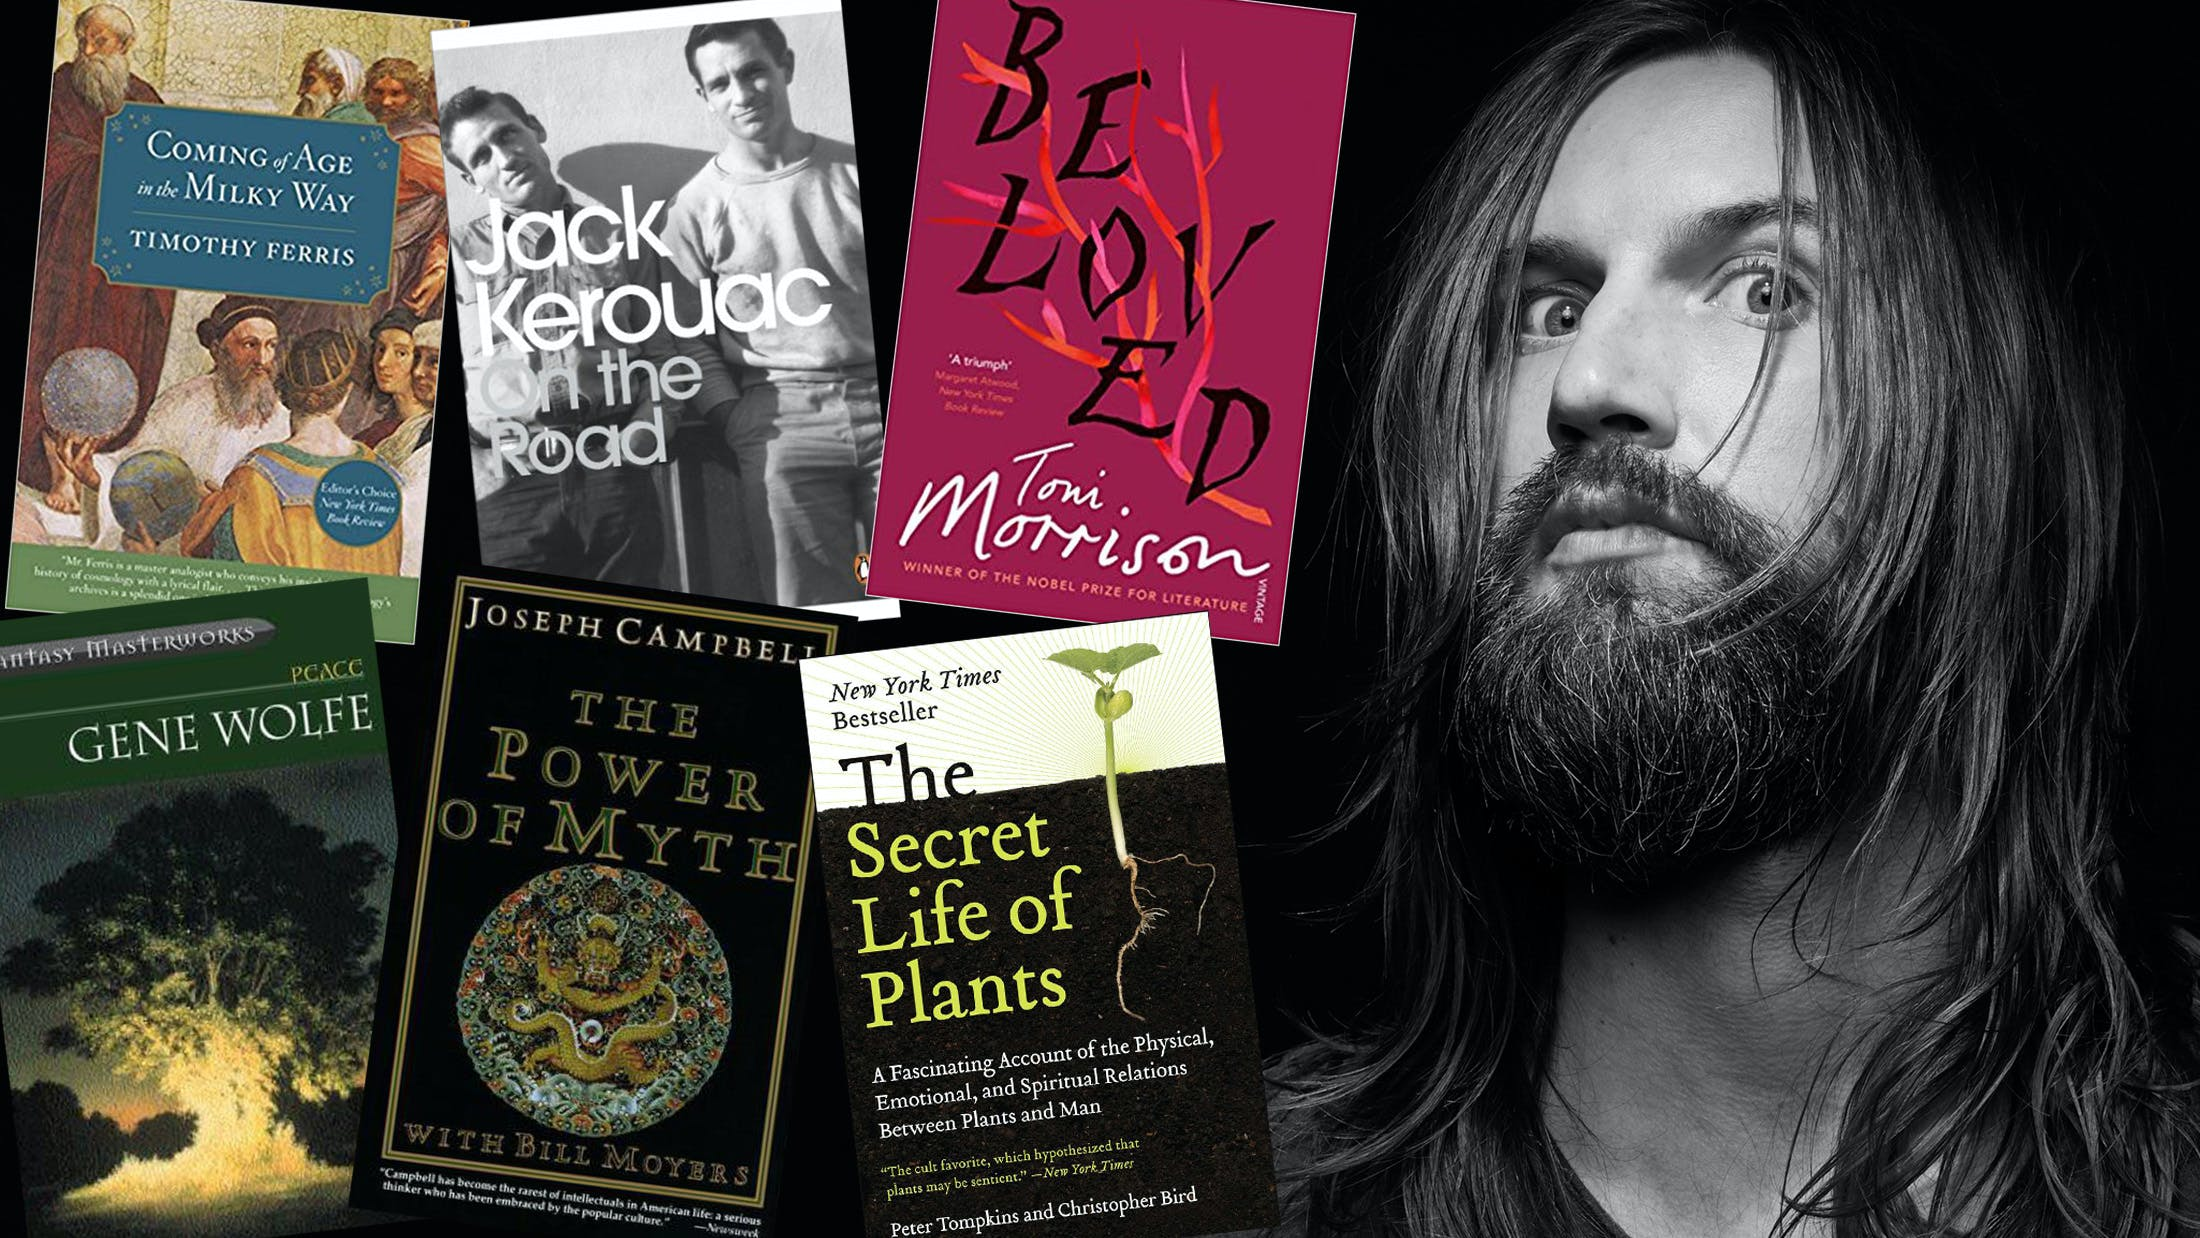 Keith Buckley: My Life In Books